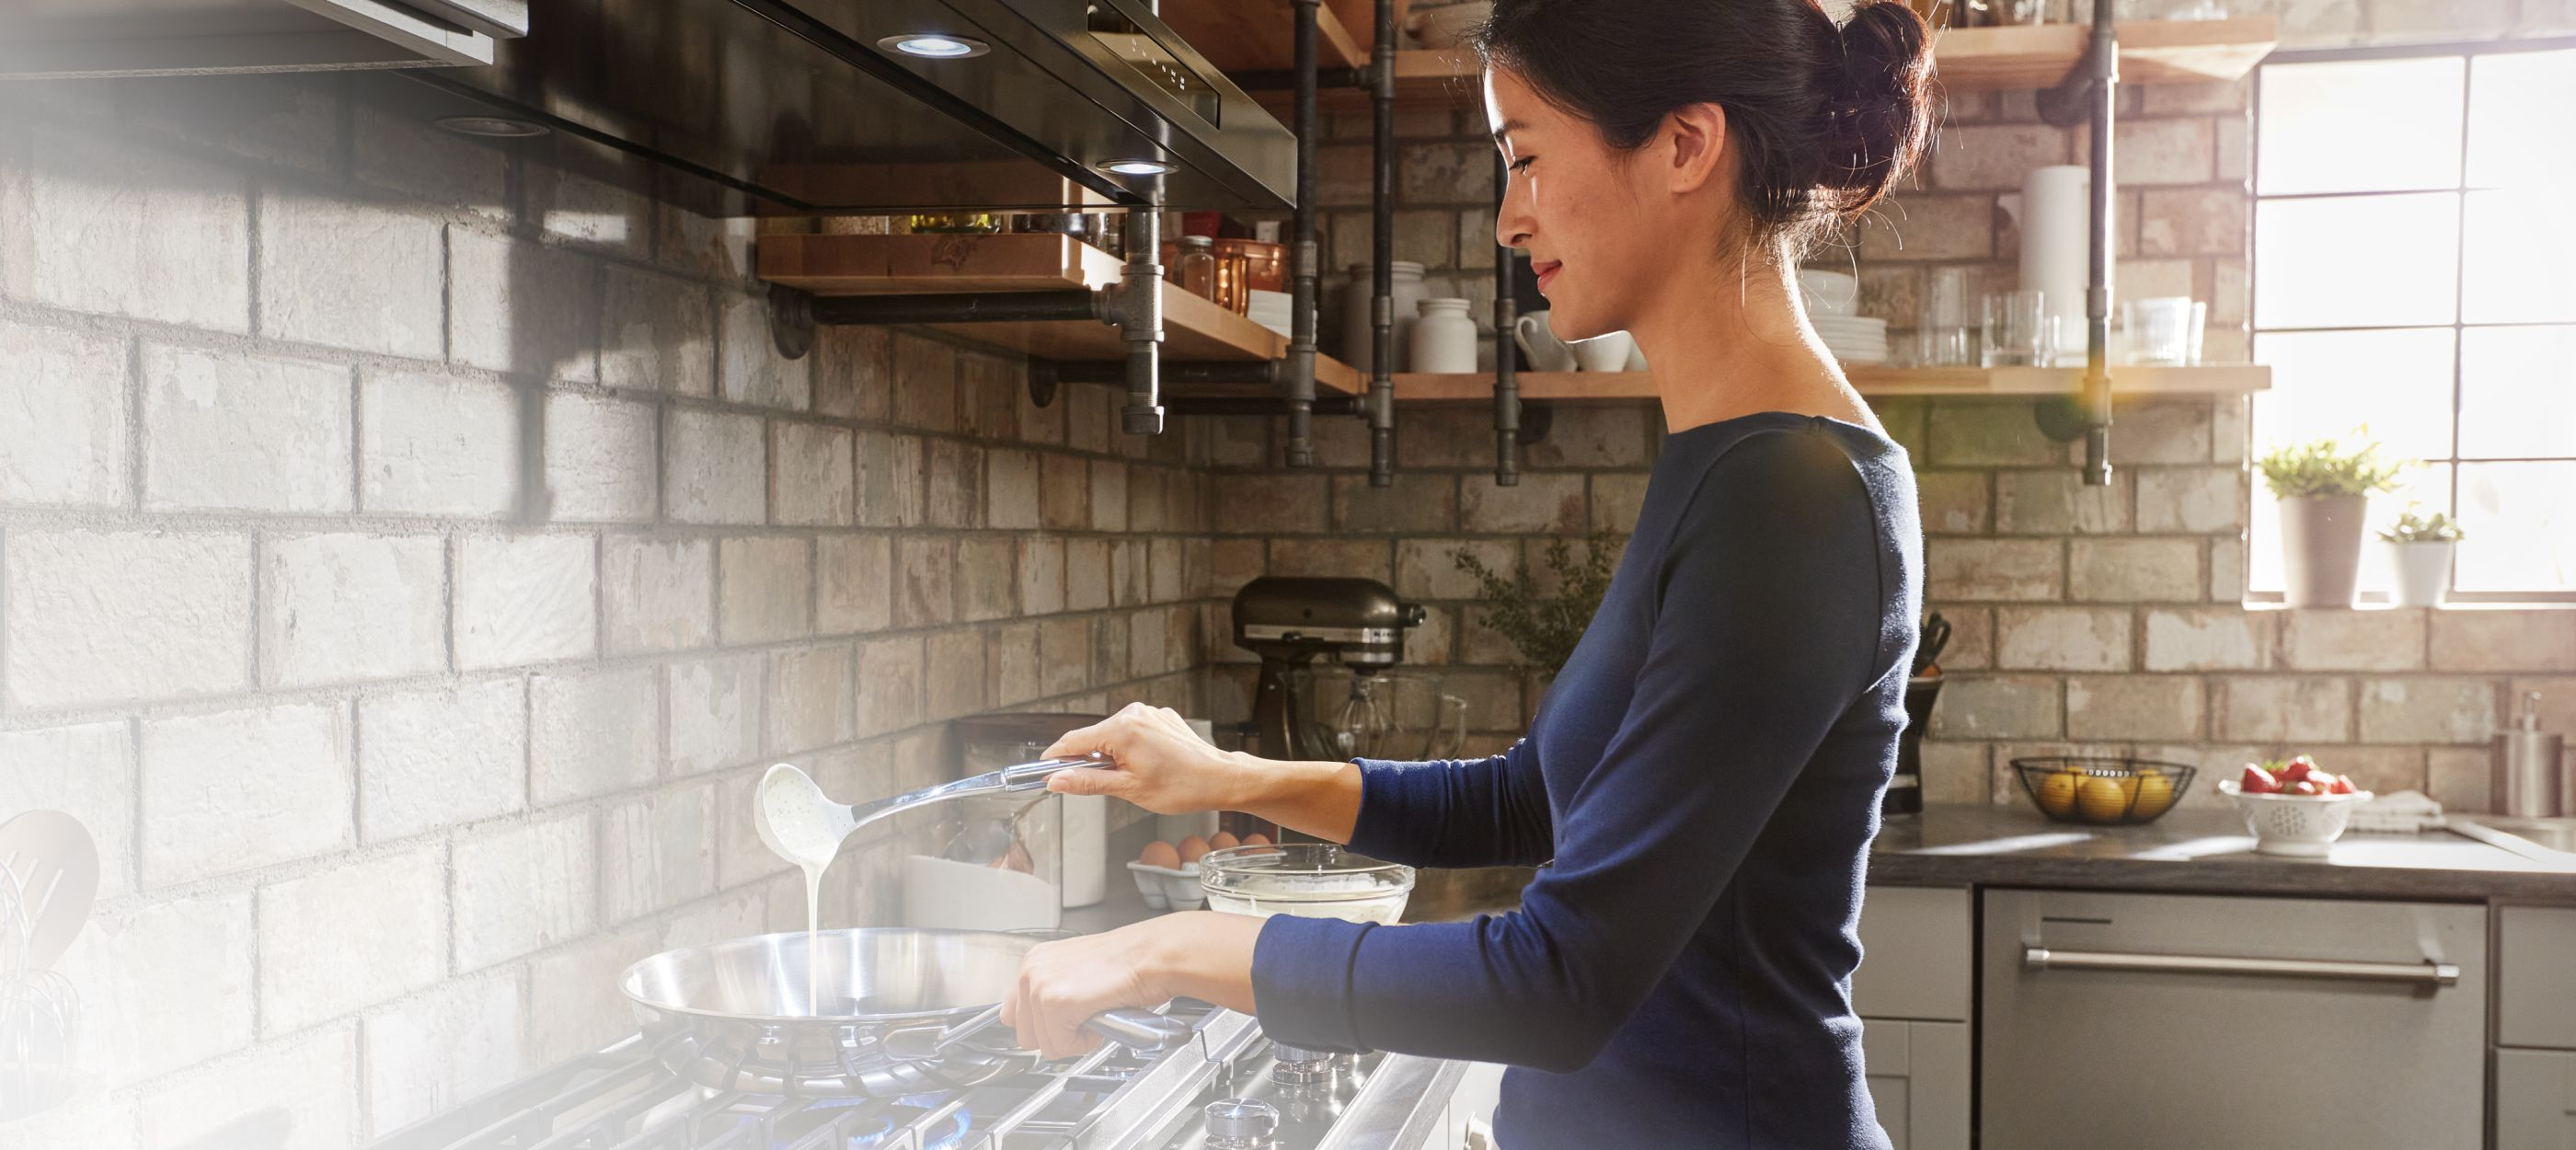 Cooking on a KitchenAid® cooktop.